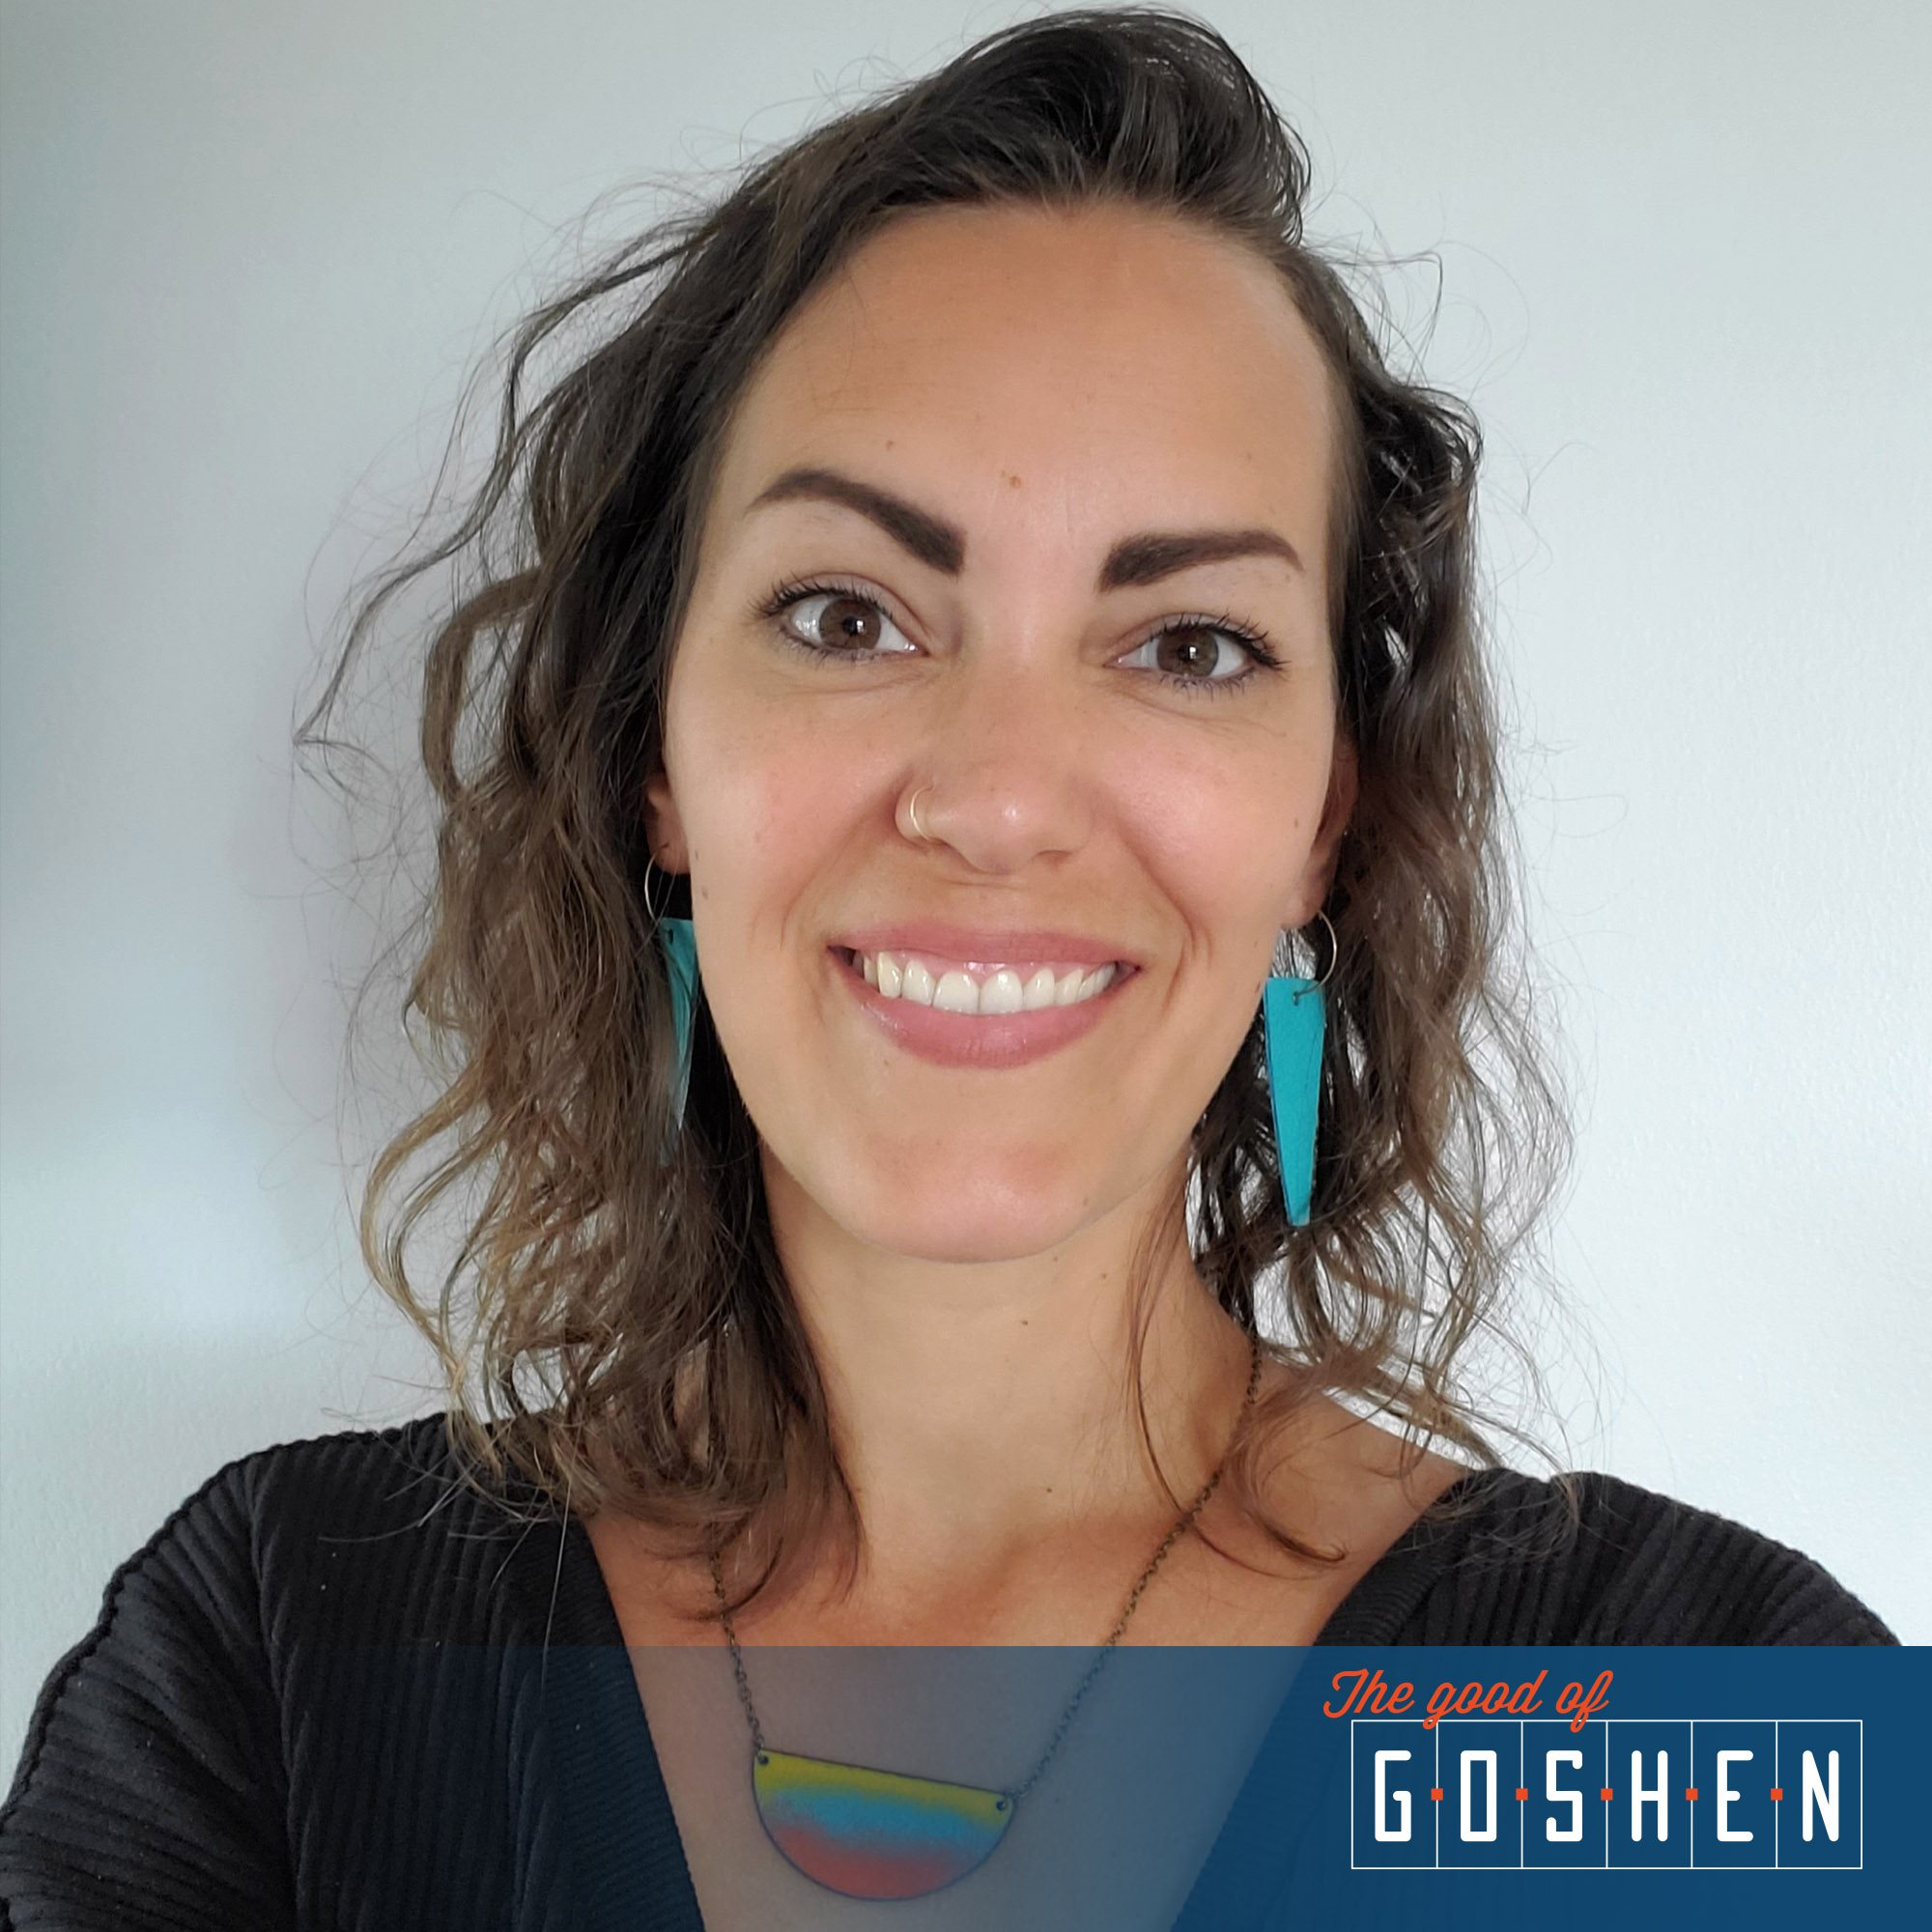 Elisabeth Barahona • The Good of Goshen